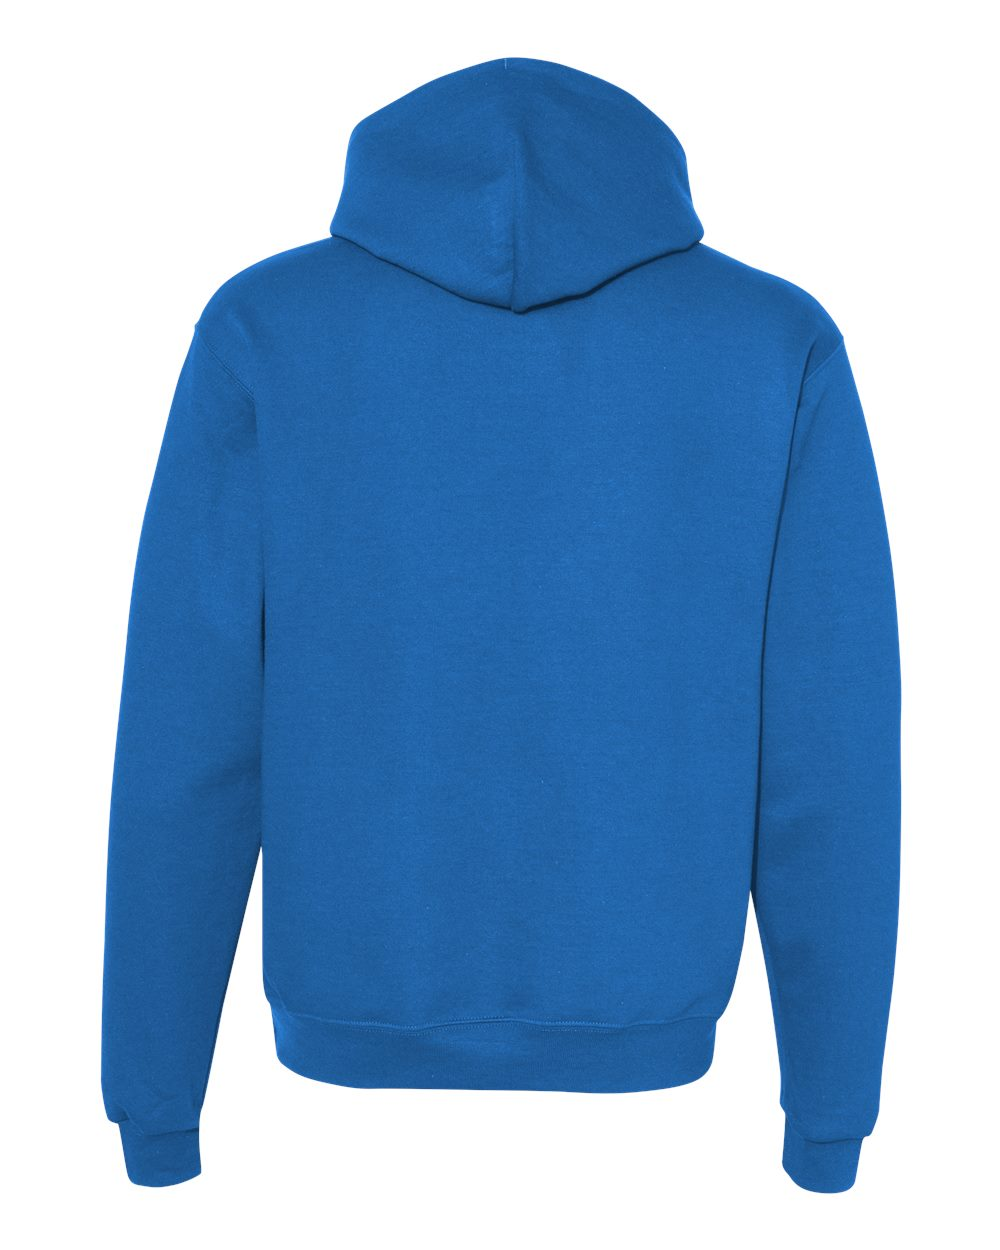 Champion-Mens-Double-Dry-Eco-Hooded-Sweatshirt-Hoodie-Pullover-S700-up-to-3XL miniature 37